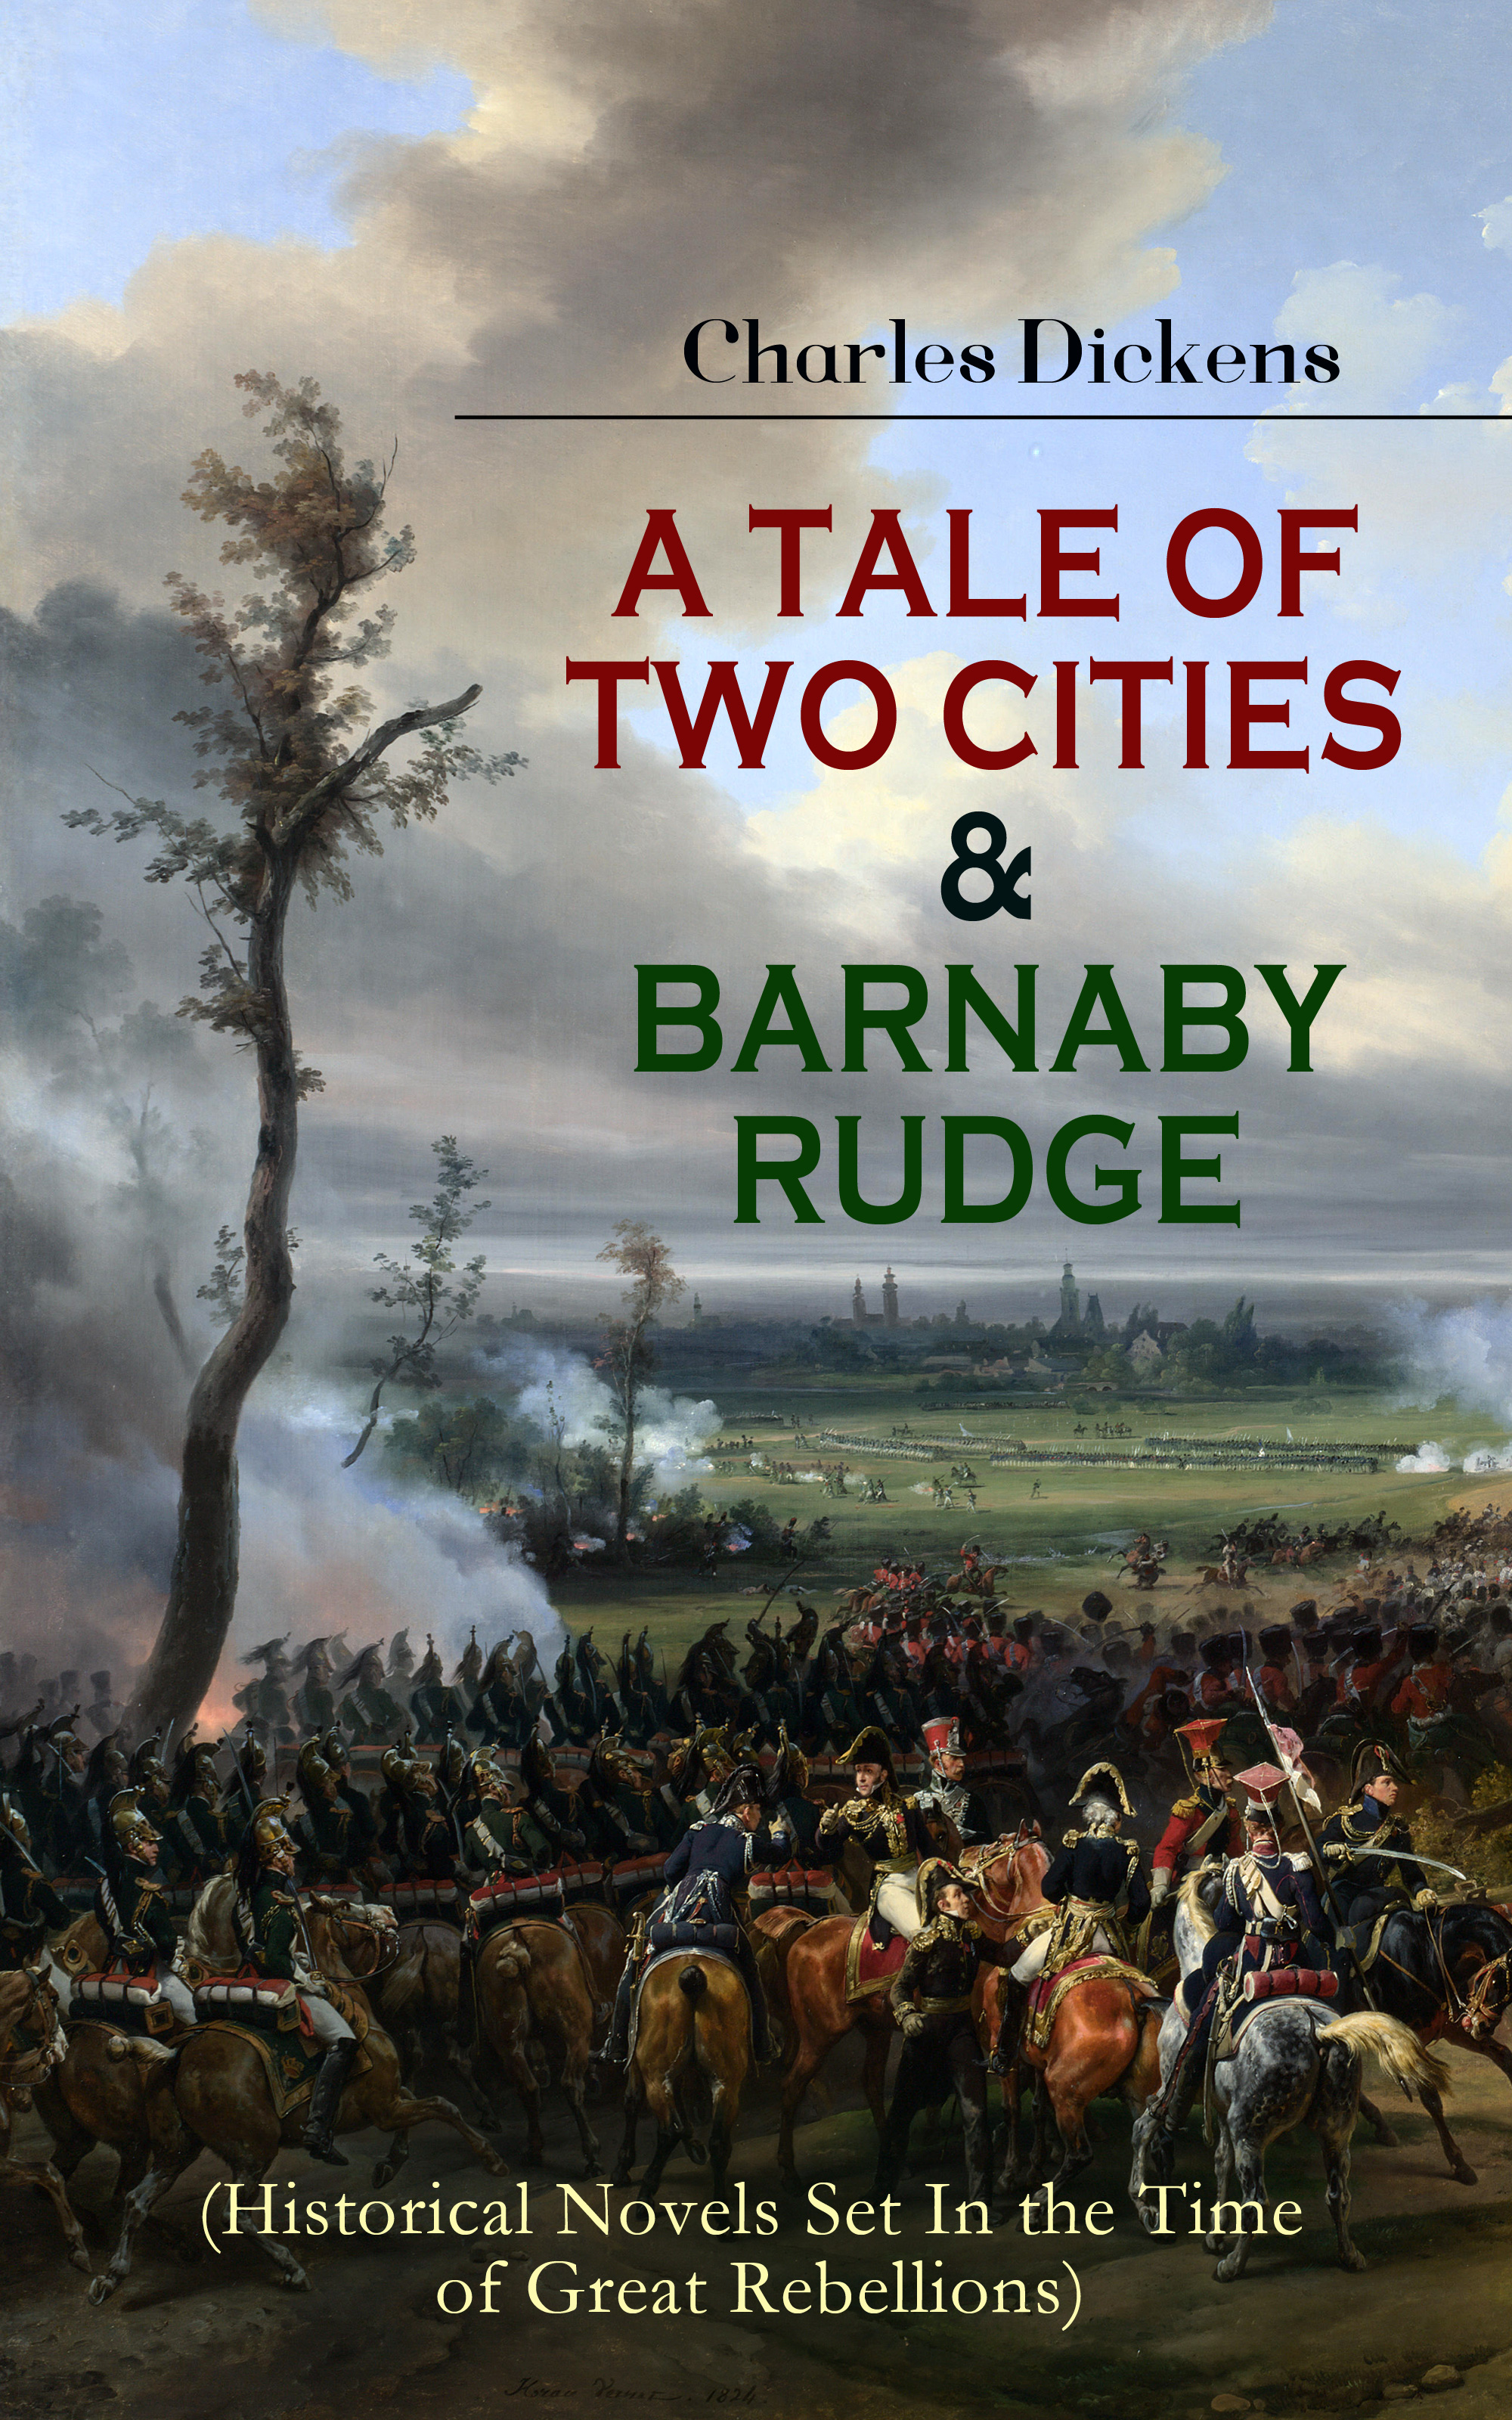 A TALE OF TWO CITIES #and# BARNABY RUDGE (Historical Novels Set In the Time of Great Rebellions)